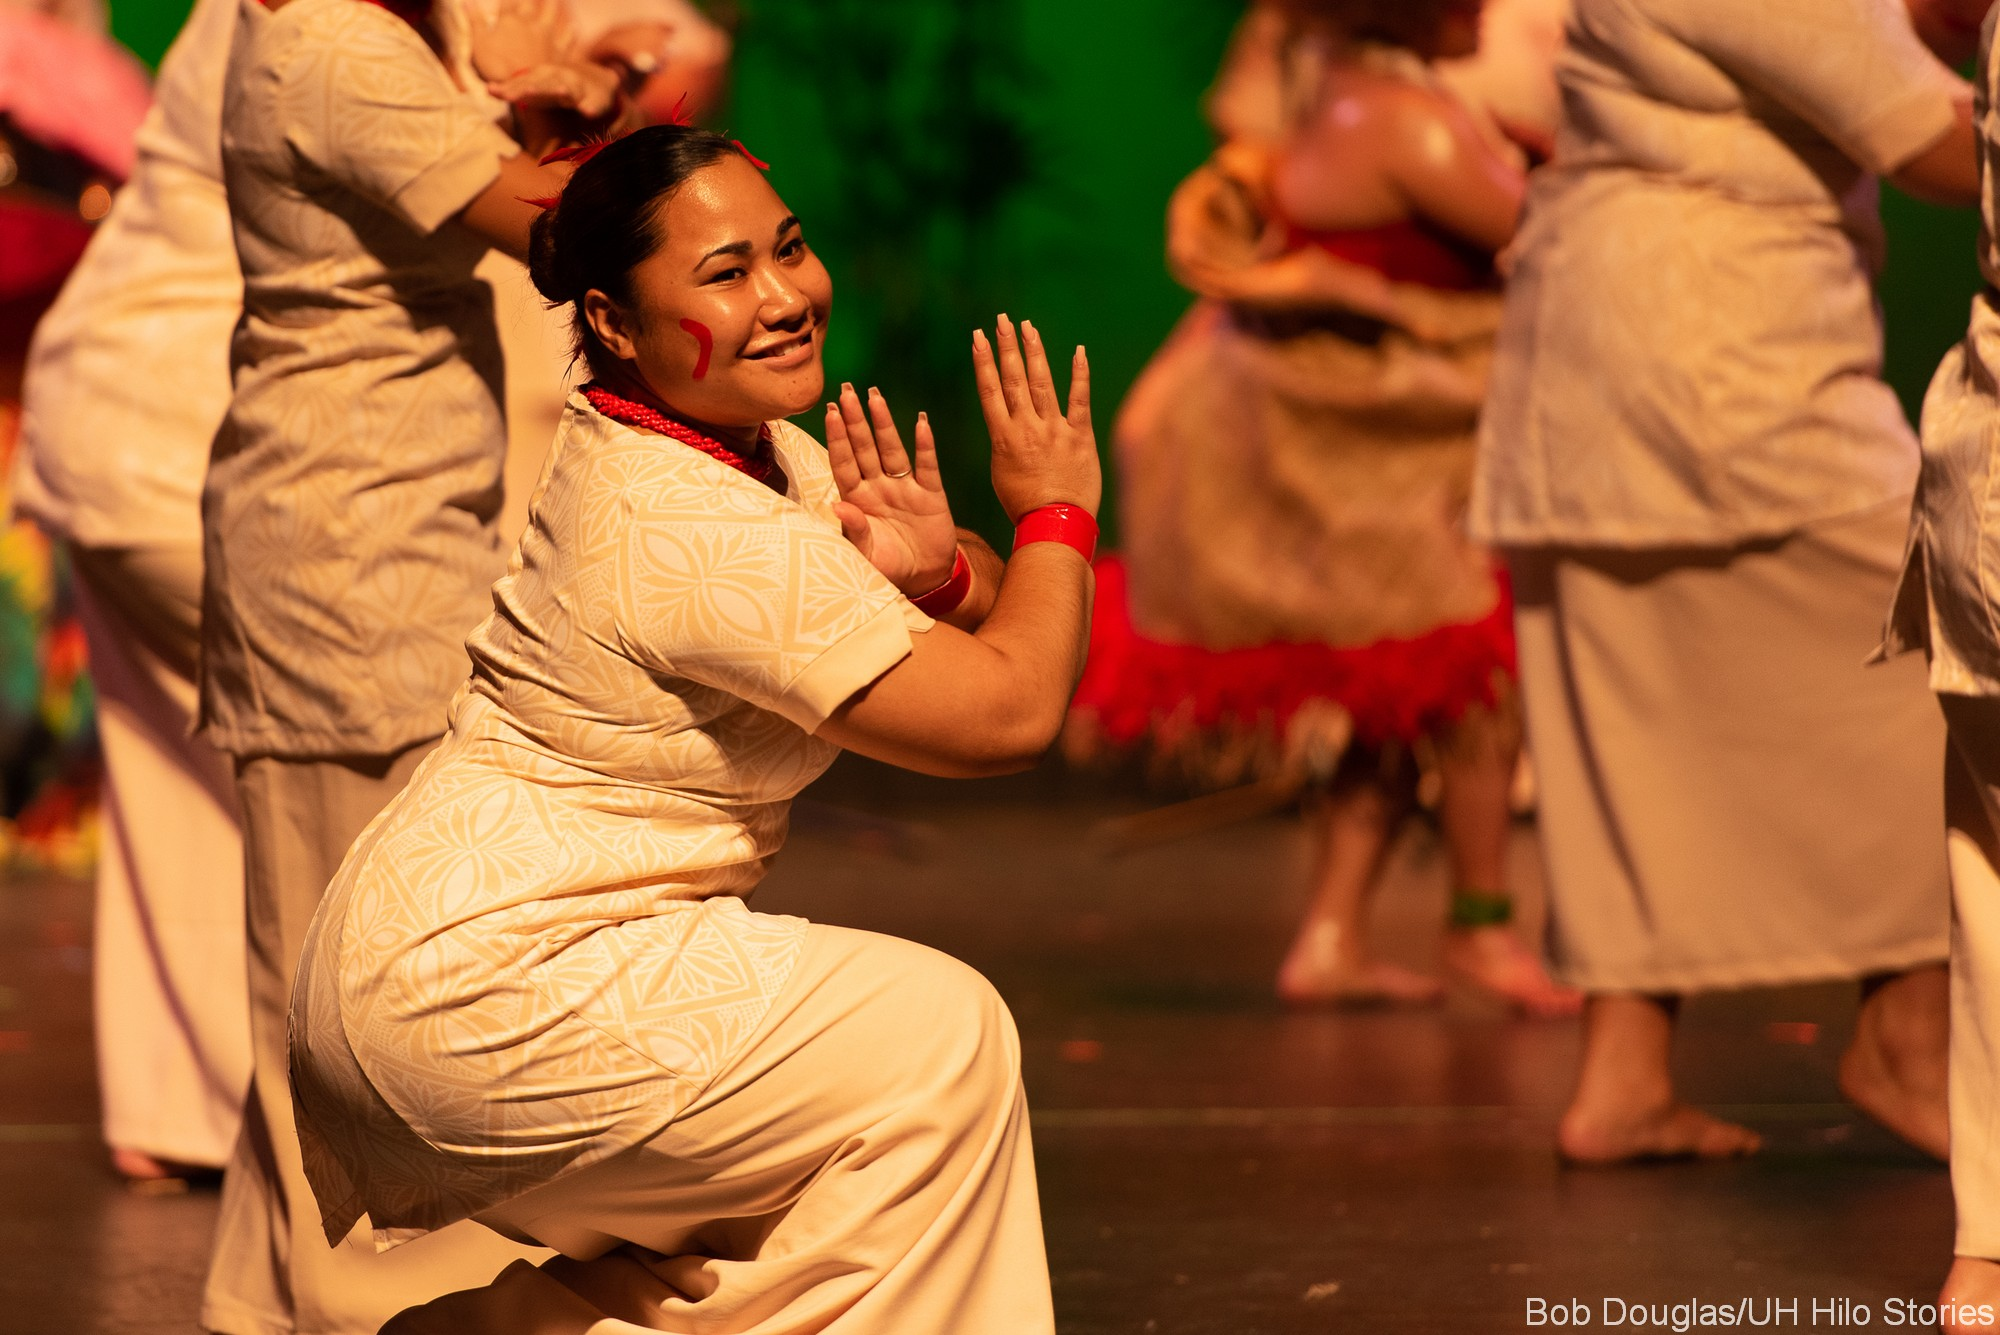 Single woman dancer dancing, crouched down, smile, graceful hands.